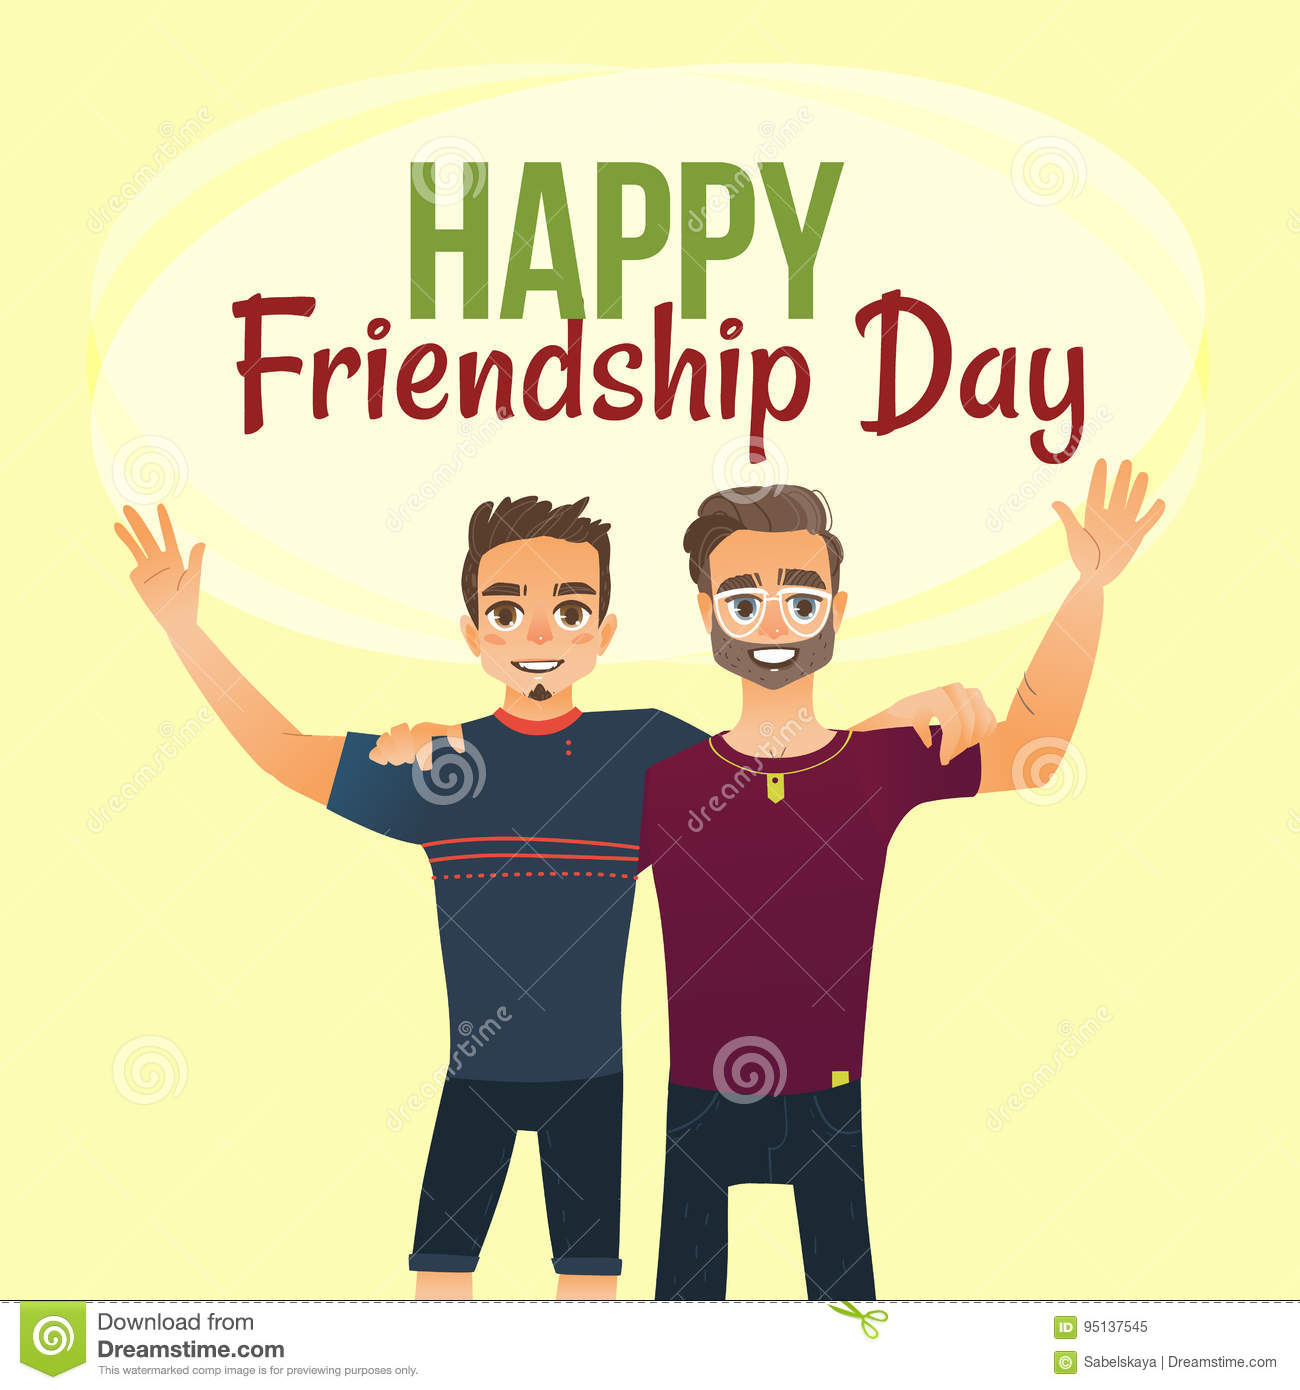 Happy Friendship Day Greeting Card With Two Men Friends Hugging Stock Vector Illustration Of Hand Background 95137545